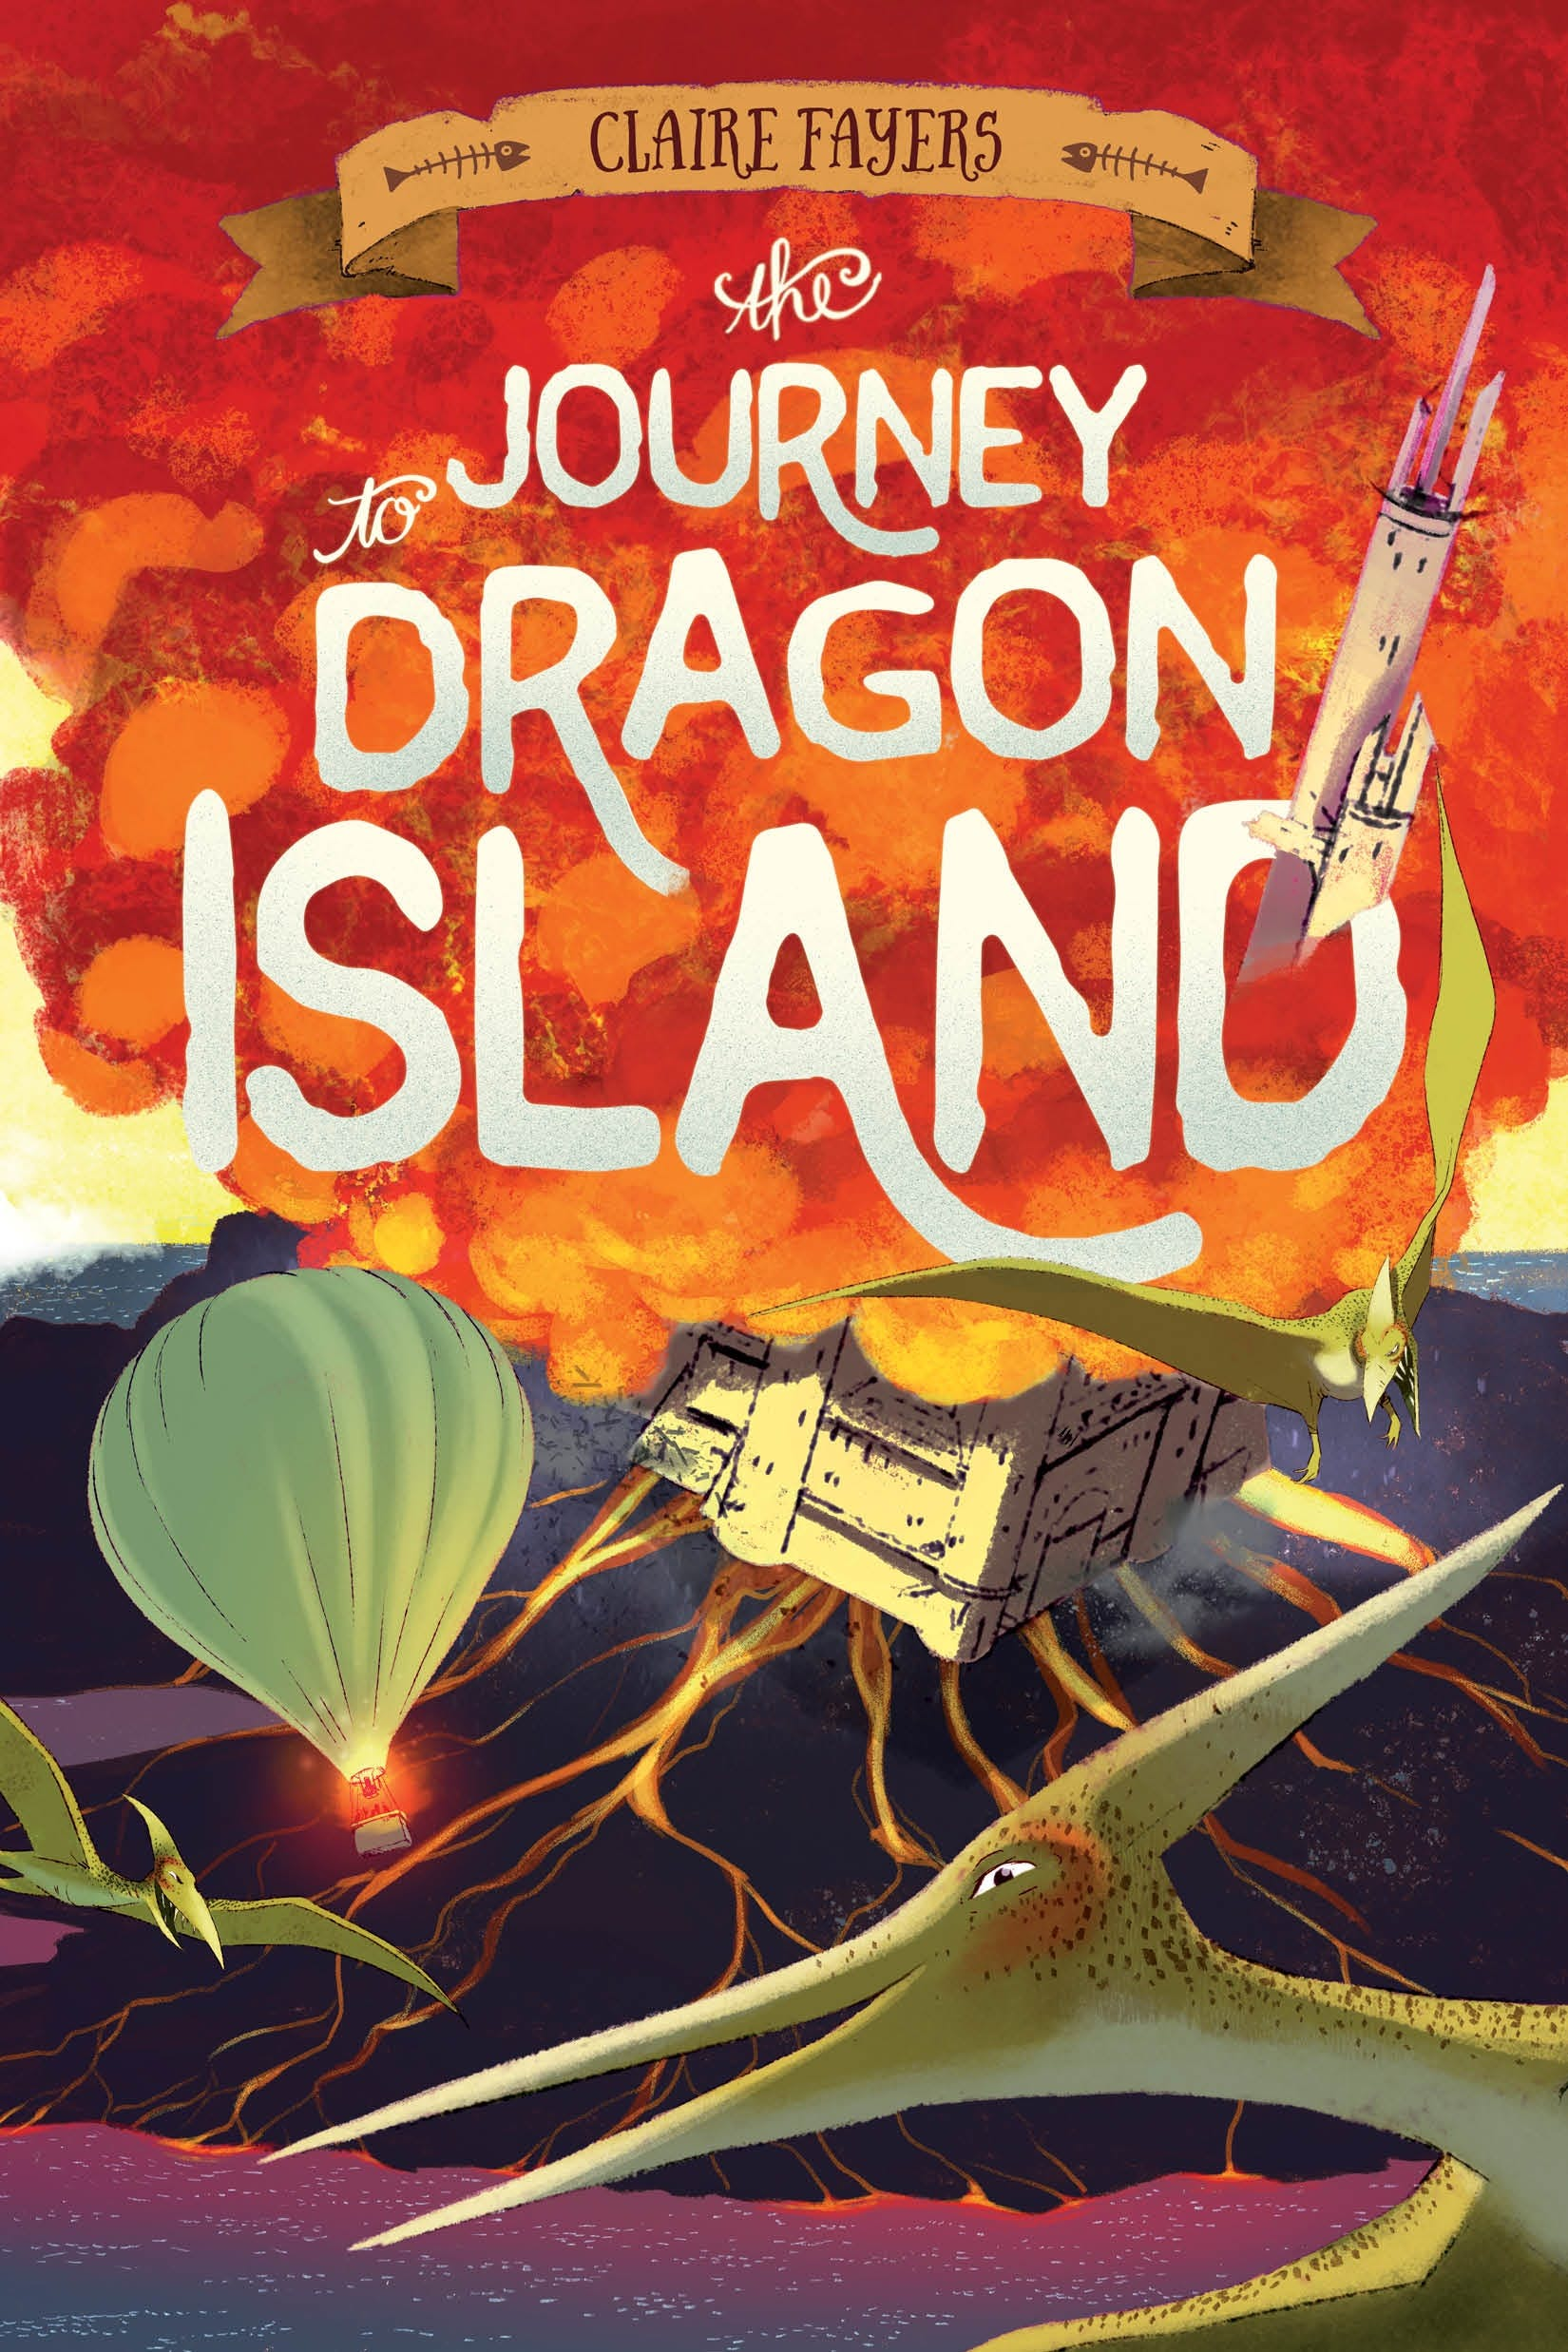 Image of The Journey to Dragon Island